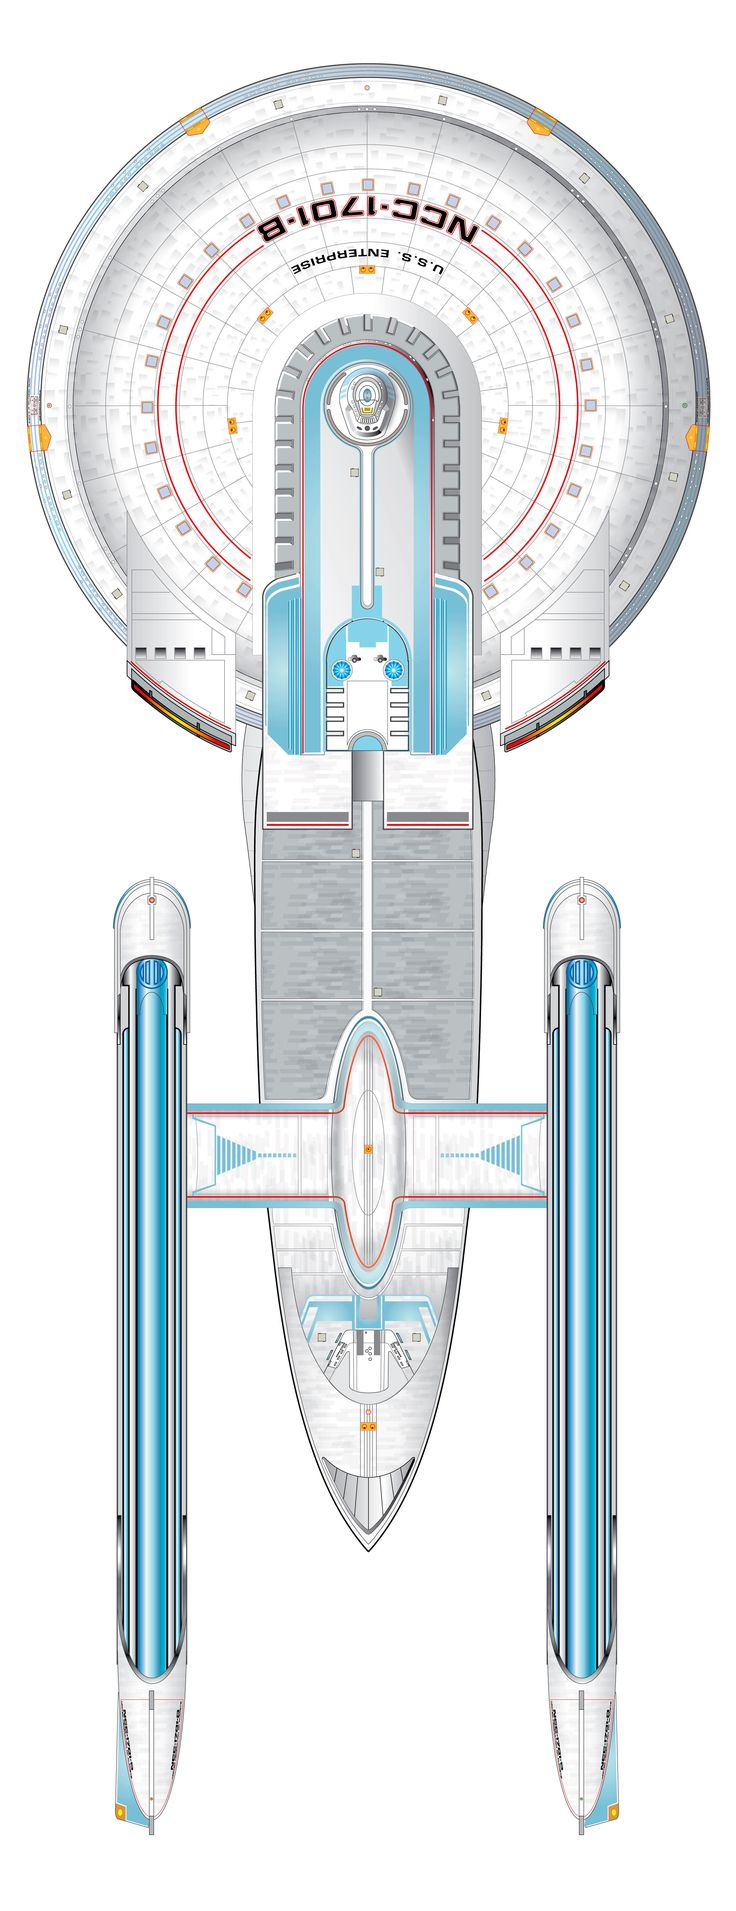 Starship schematic, Excelsior Class [variant] USS Enterprise (NCC-1701-B)  Top View. Keep clicking on the photo. It'll enlarge to show one of the most amazing blueprints you've ever seen!